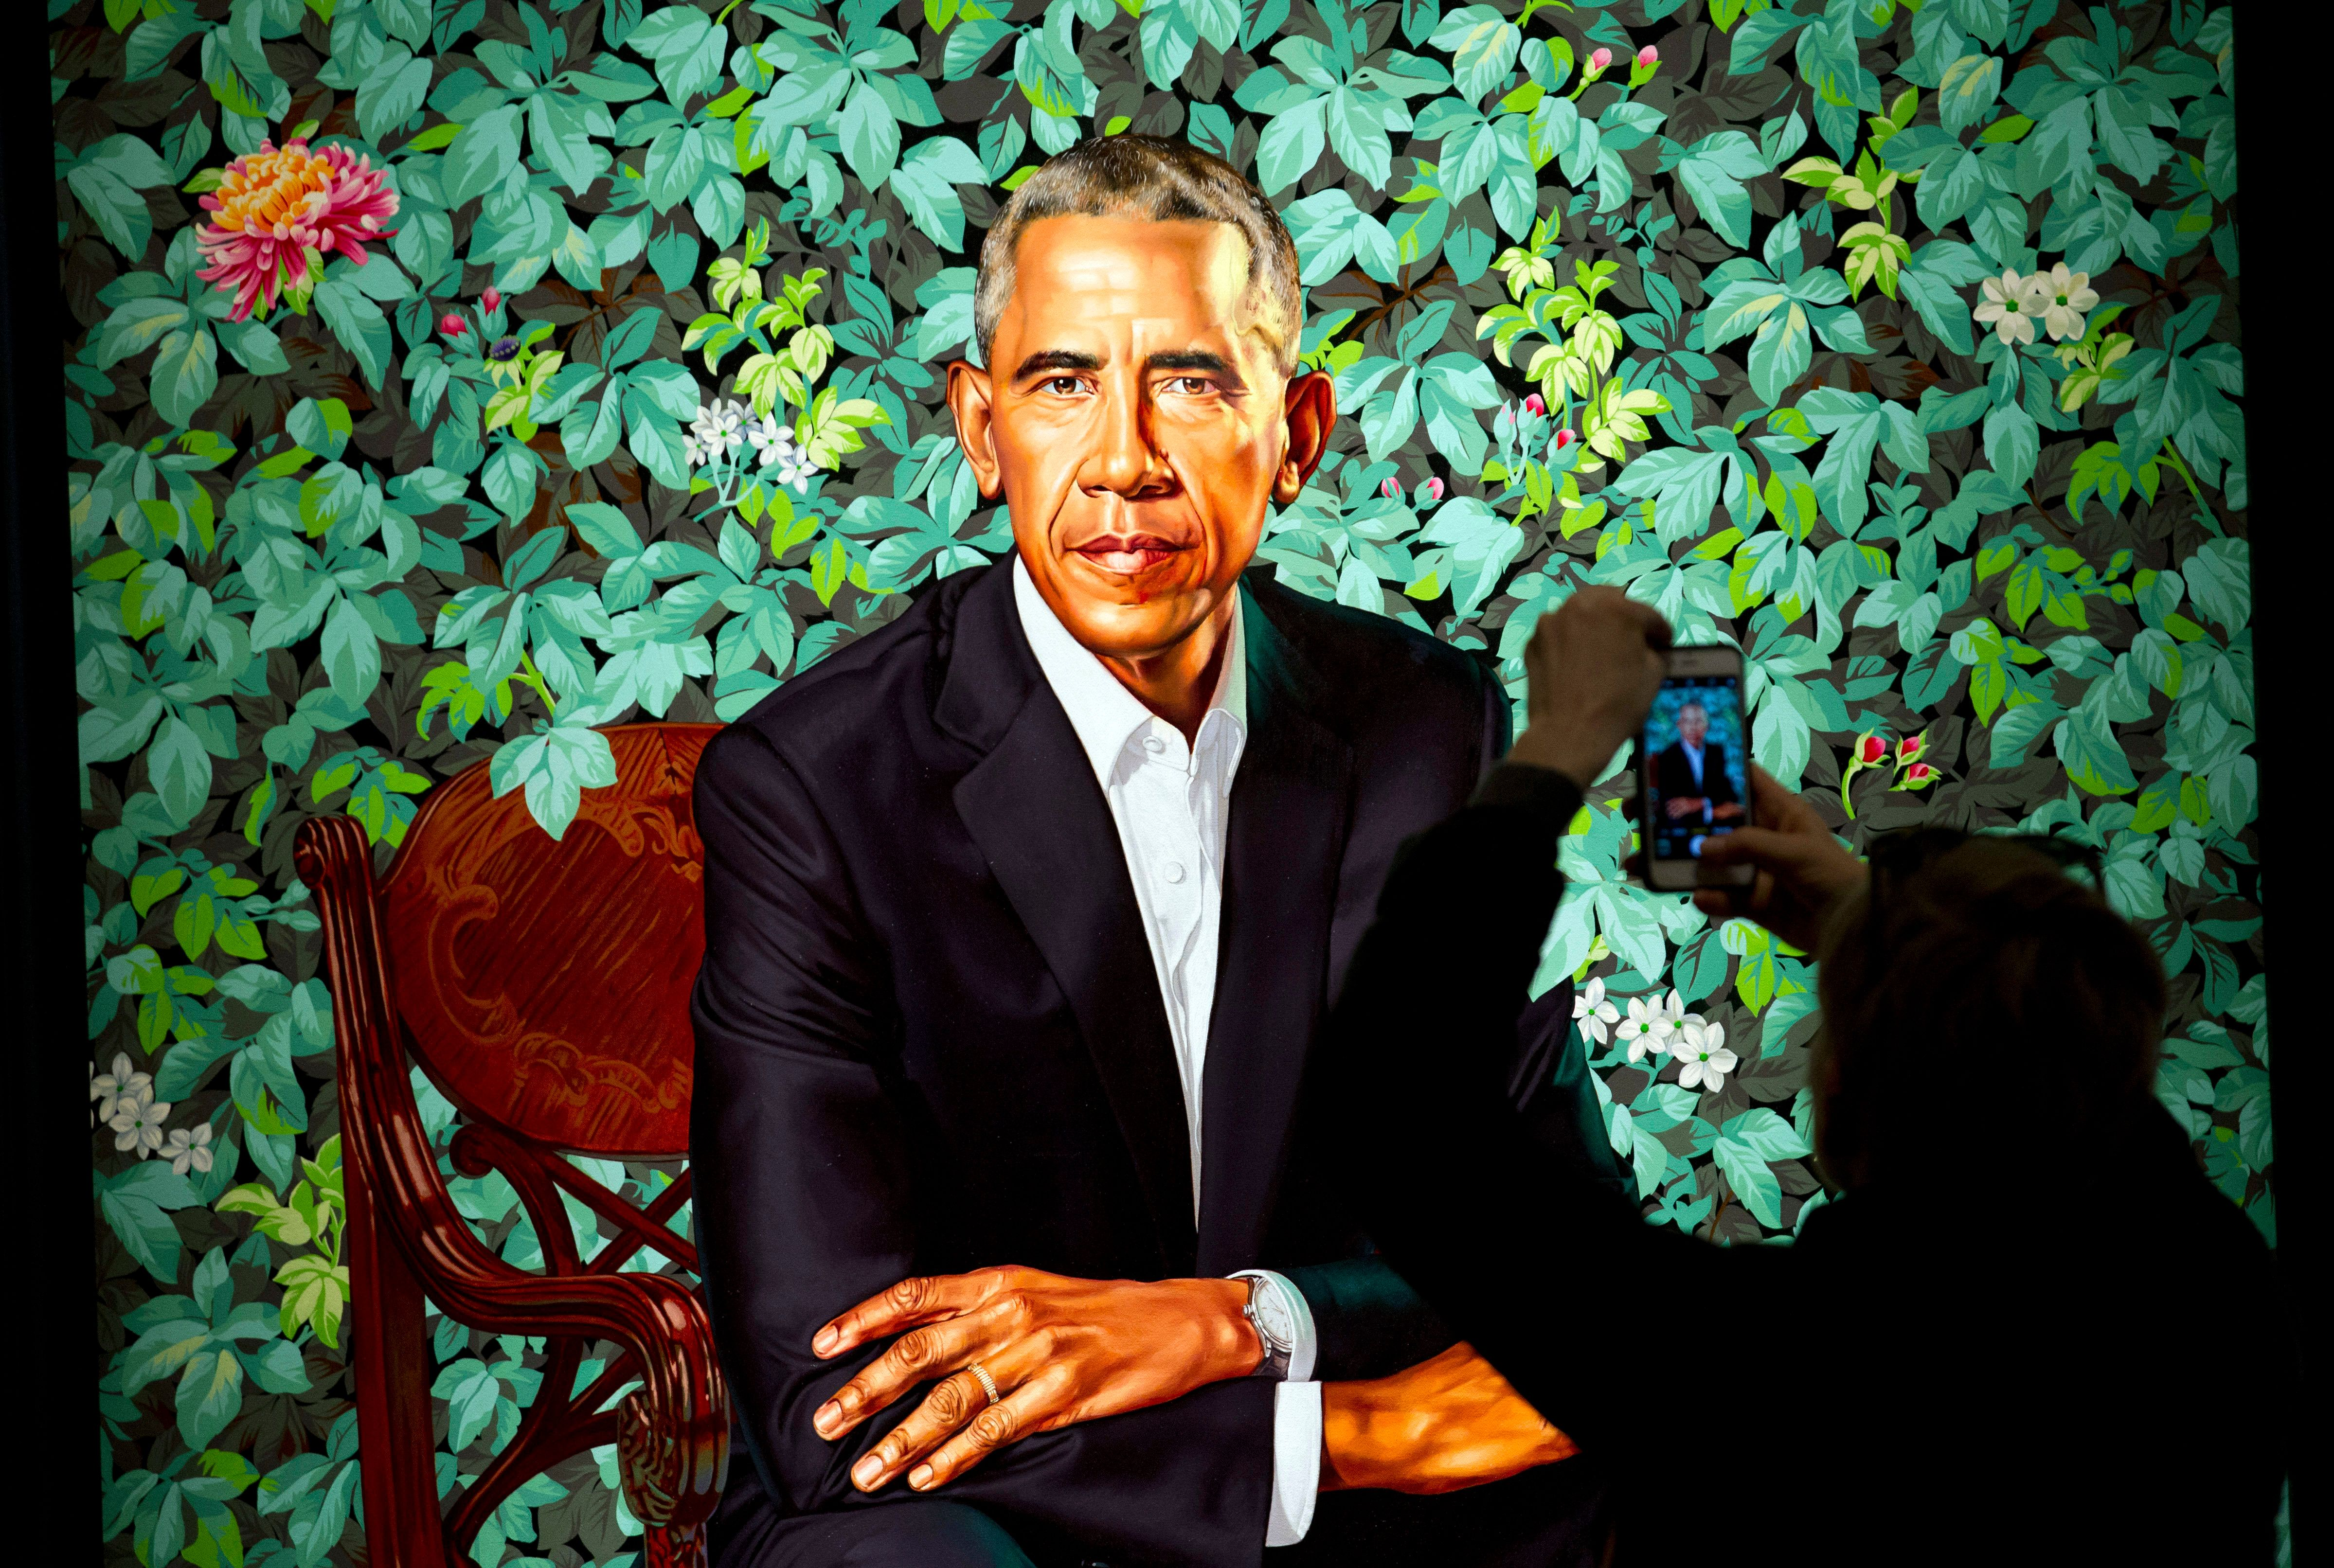 Obama Paintings Brought 1 Million More Visitors To National Portrait